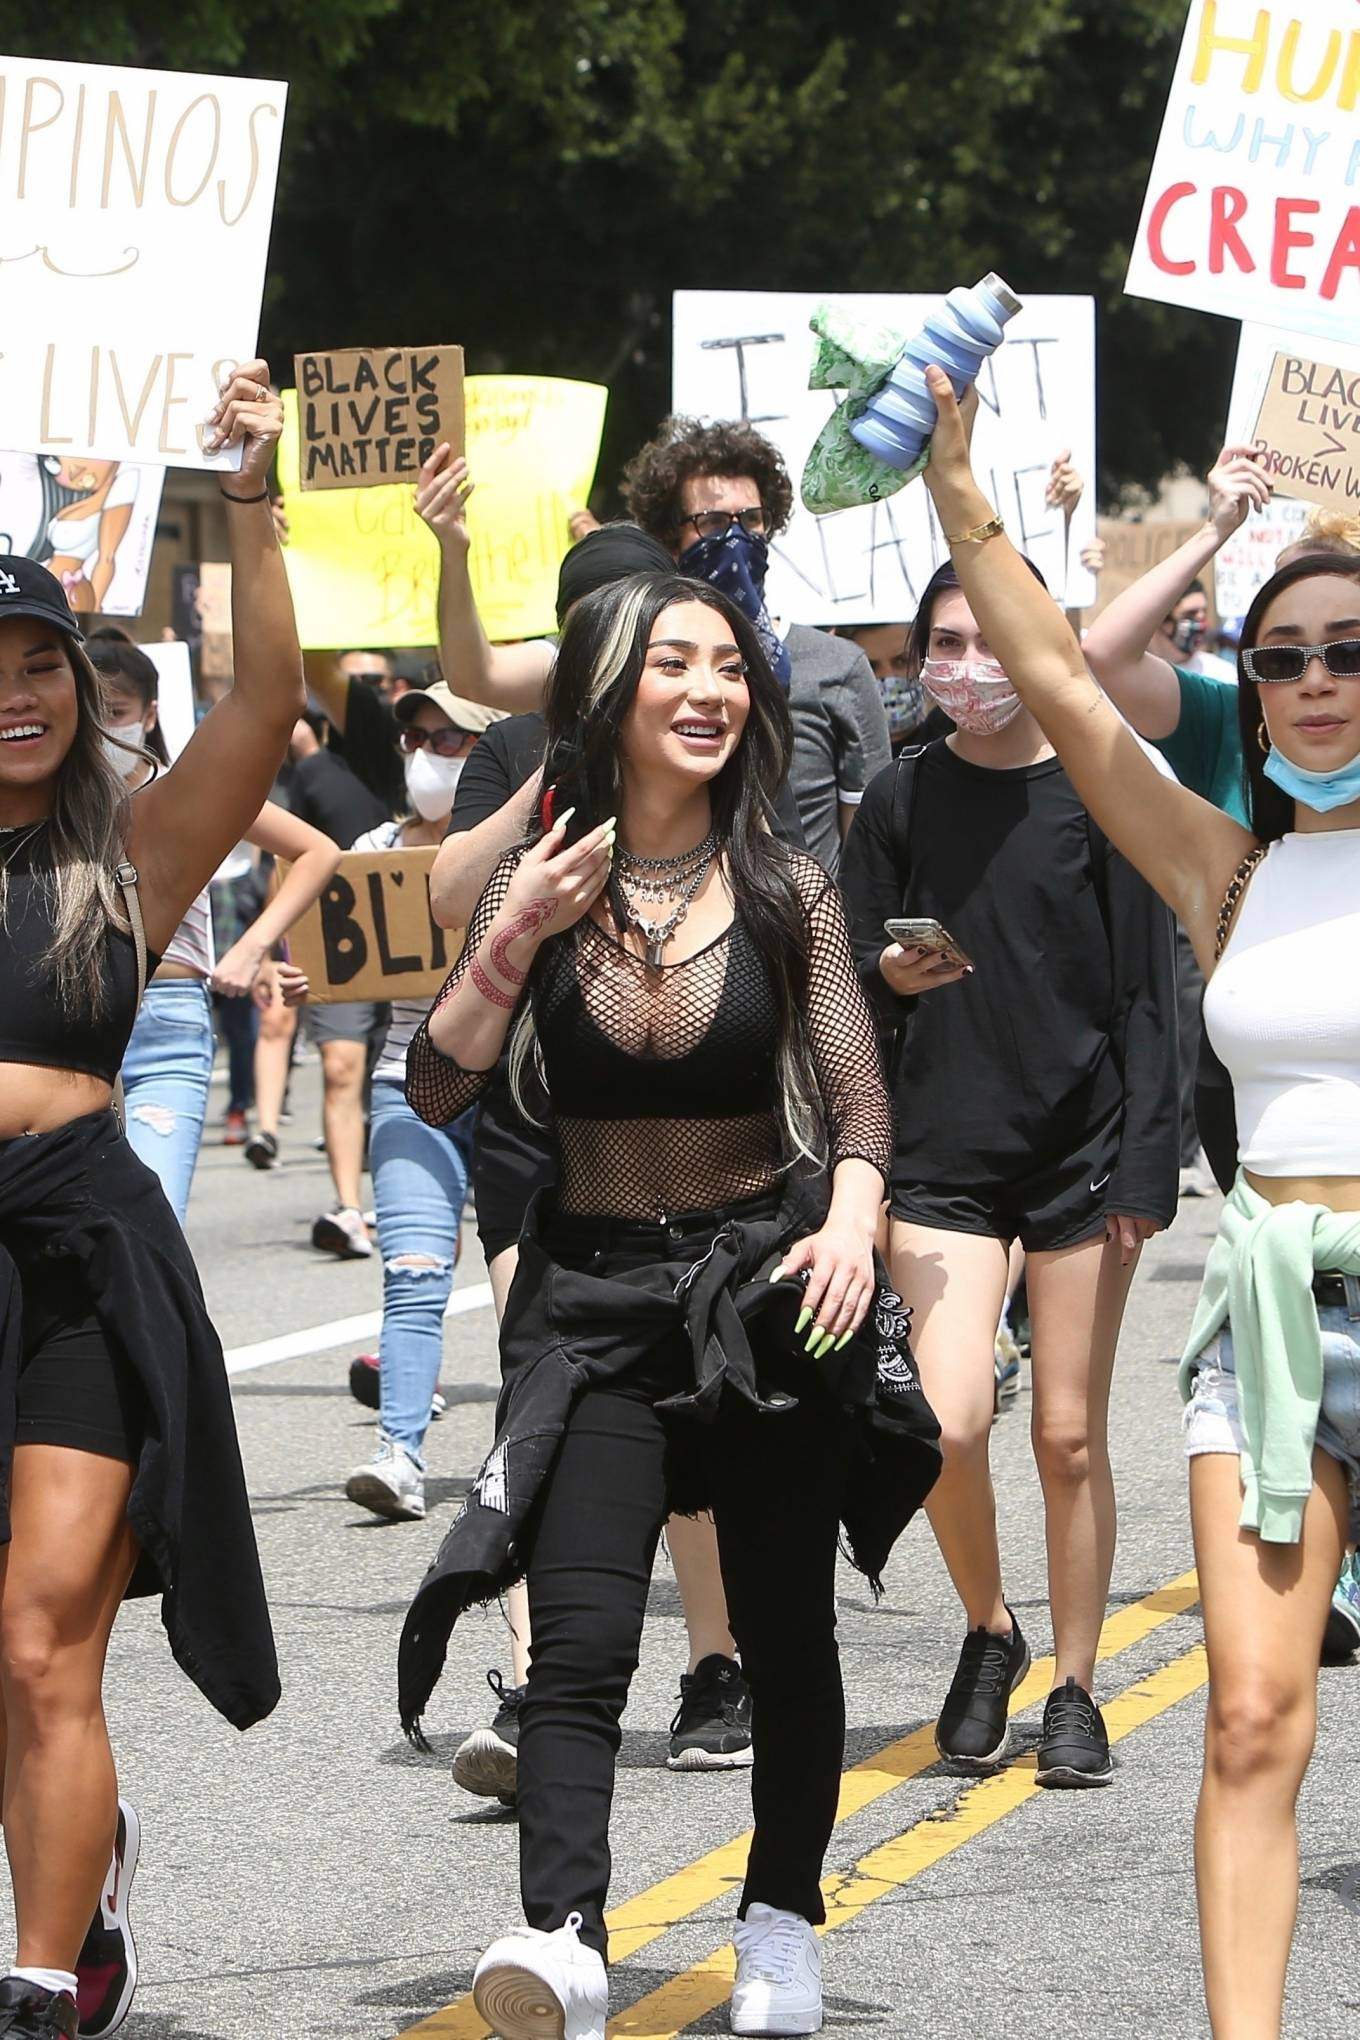 Nikita Dragun - Marches with fellow protesters in Hollywood